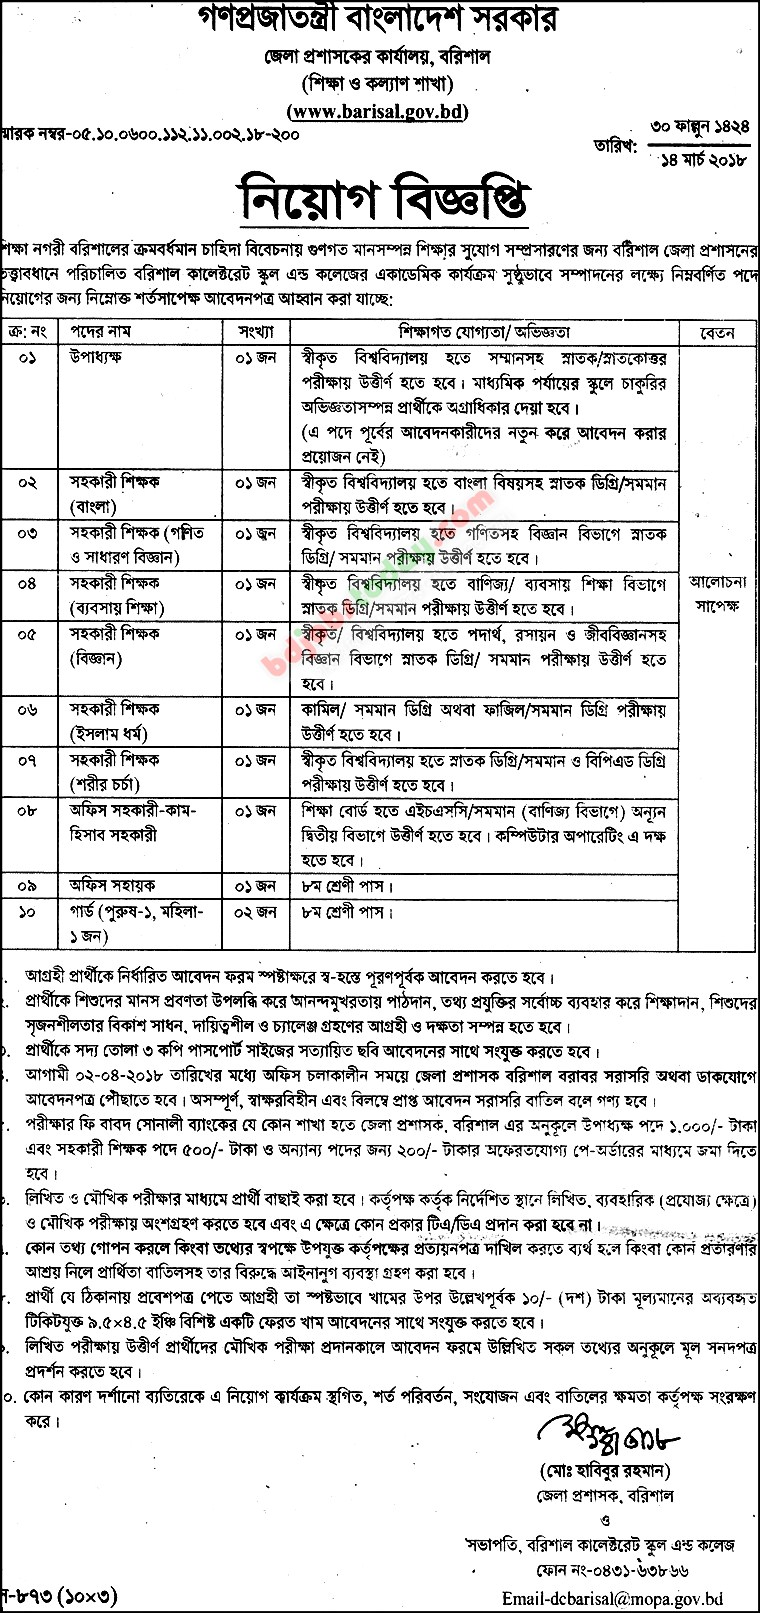 Office of District Commissioner, Barisal,